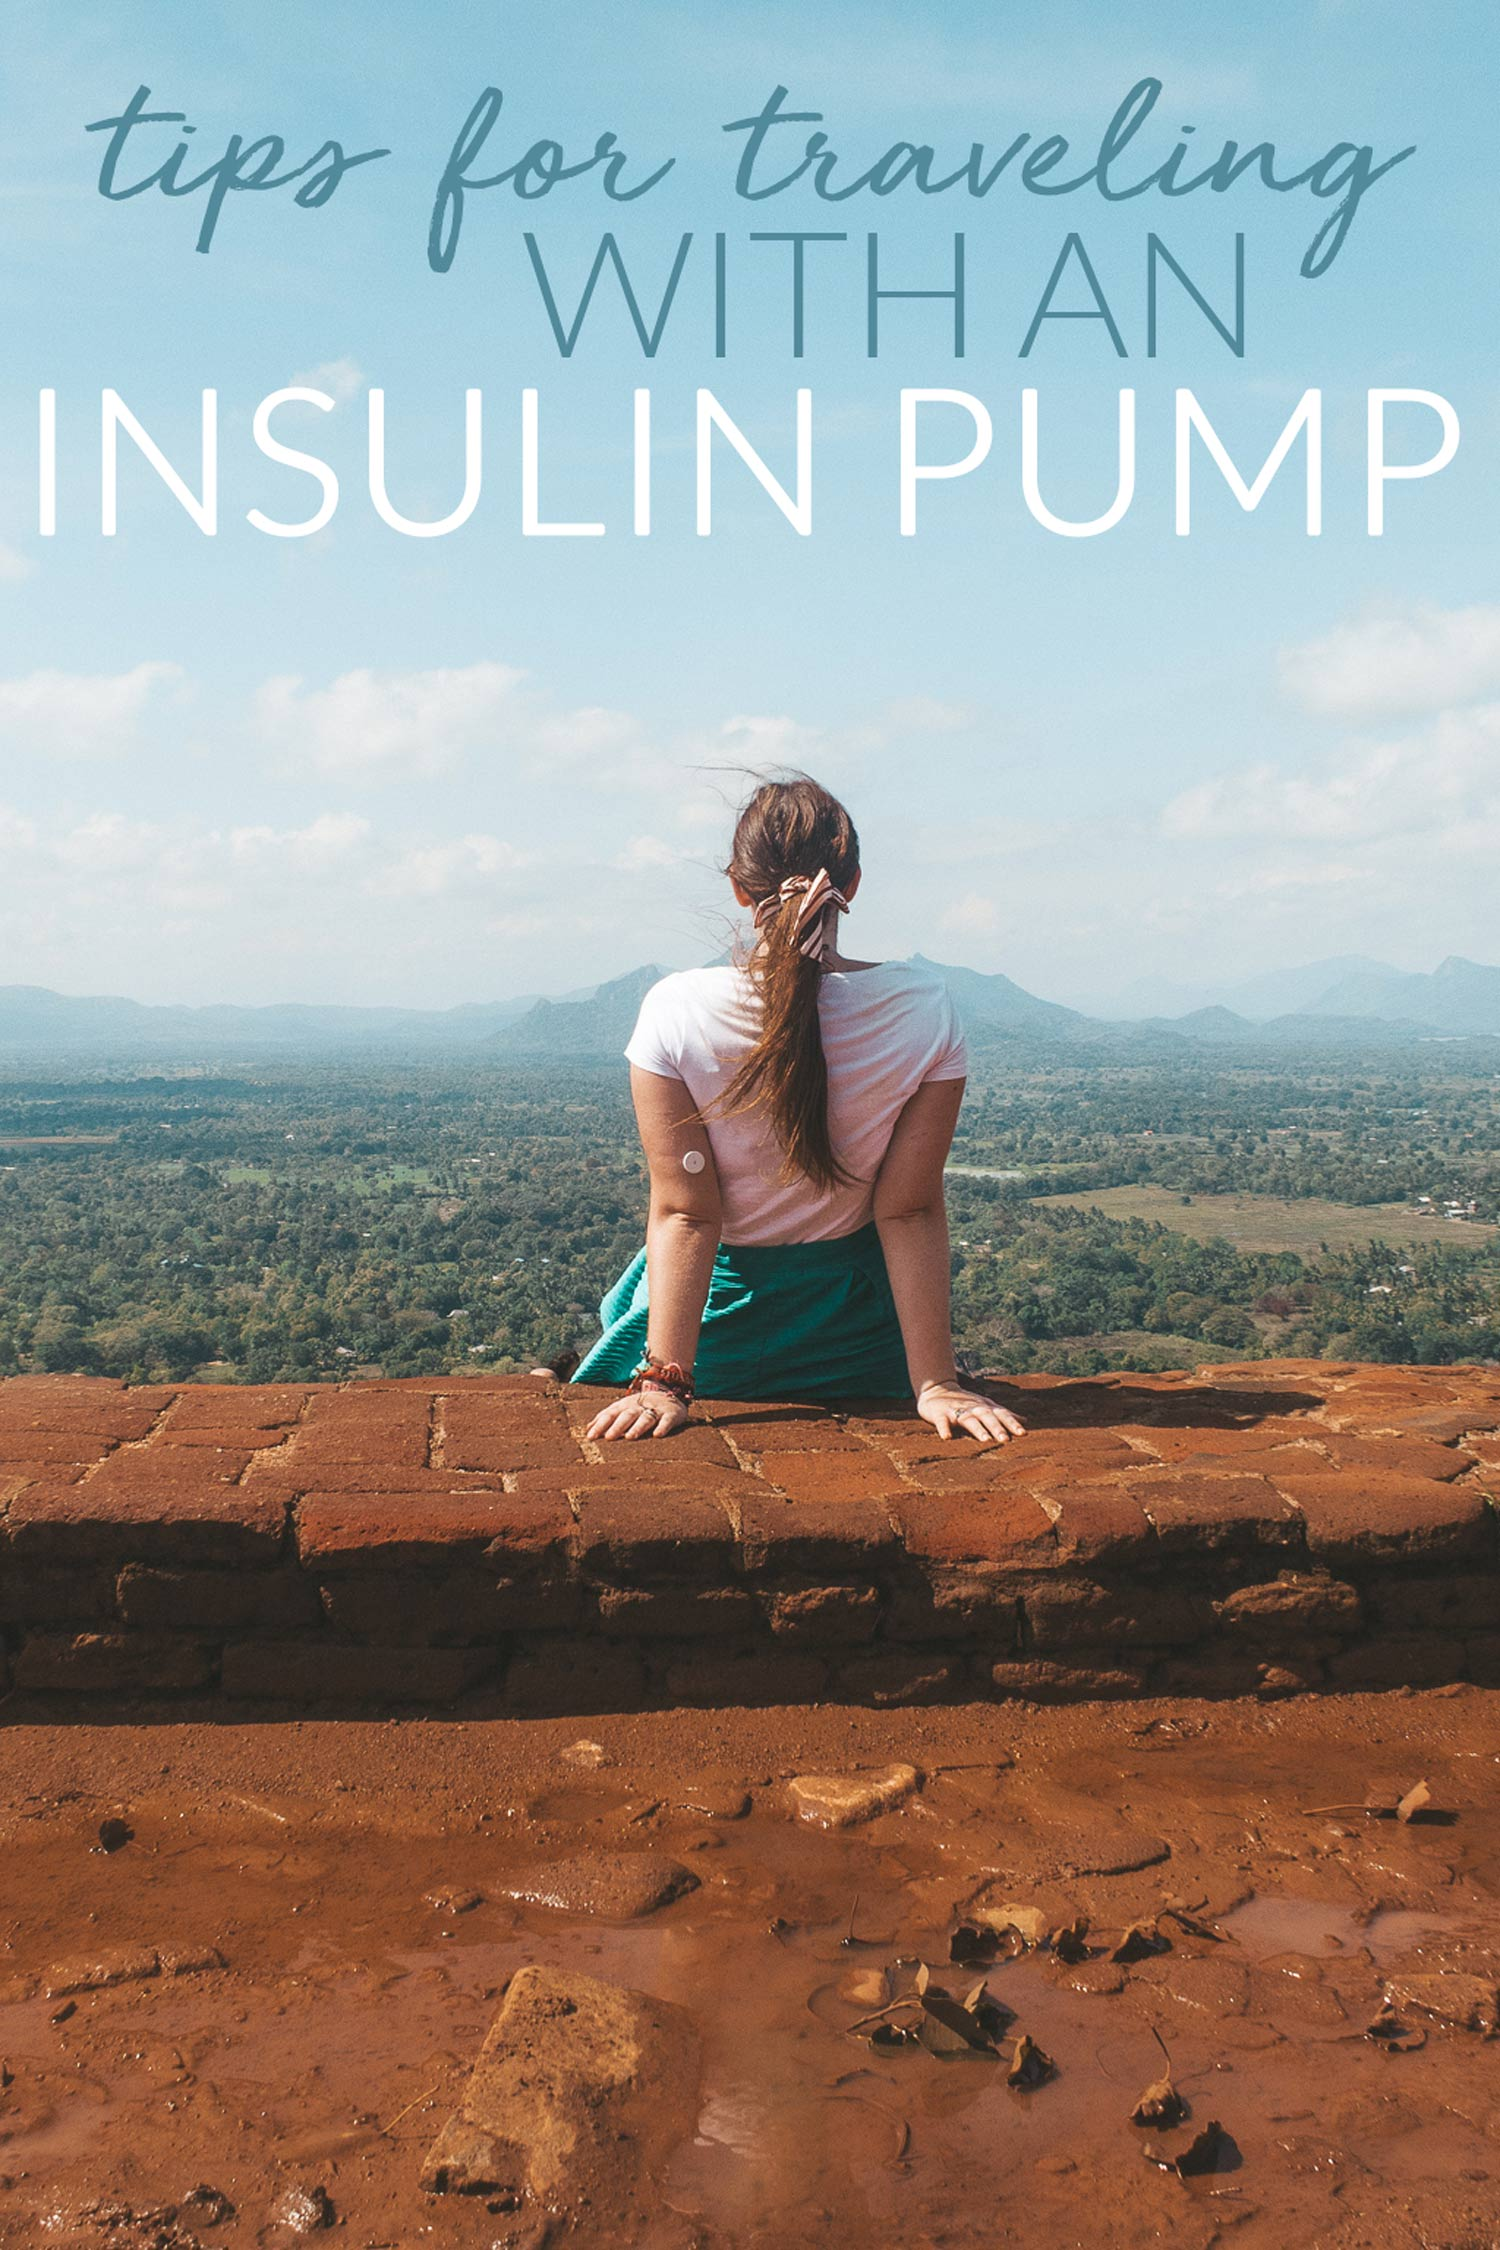 Tips for Traveling with an Insulin Pump